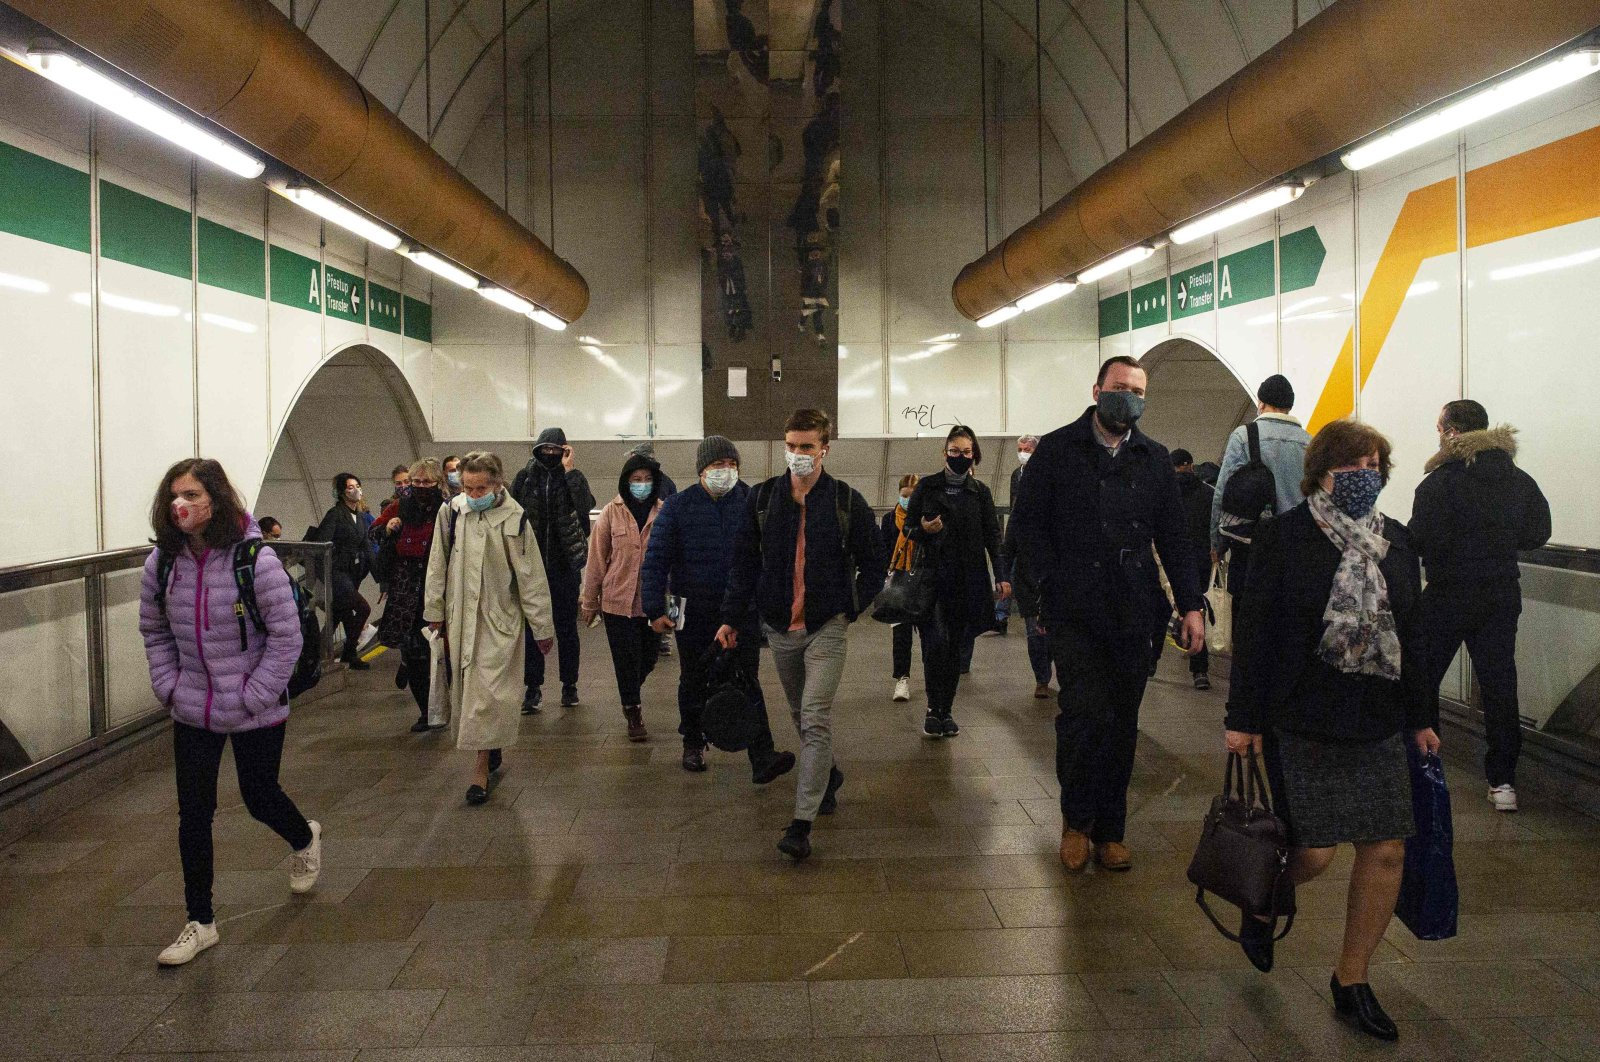 Passengers wearing masks walk in the corridor of a metro station in Prague, Oct.13, 2020. (AFP)